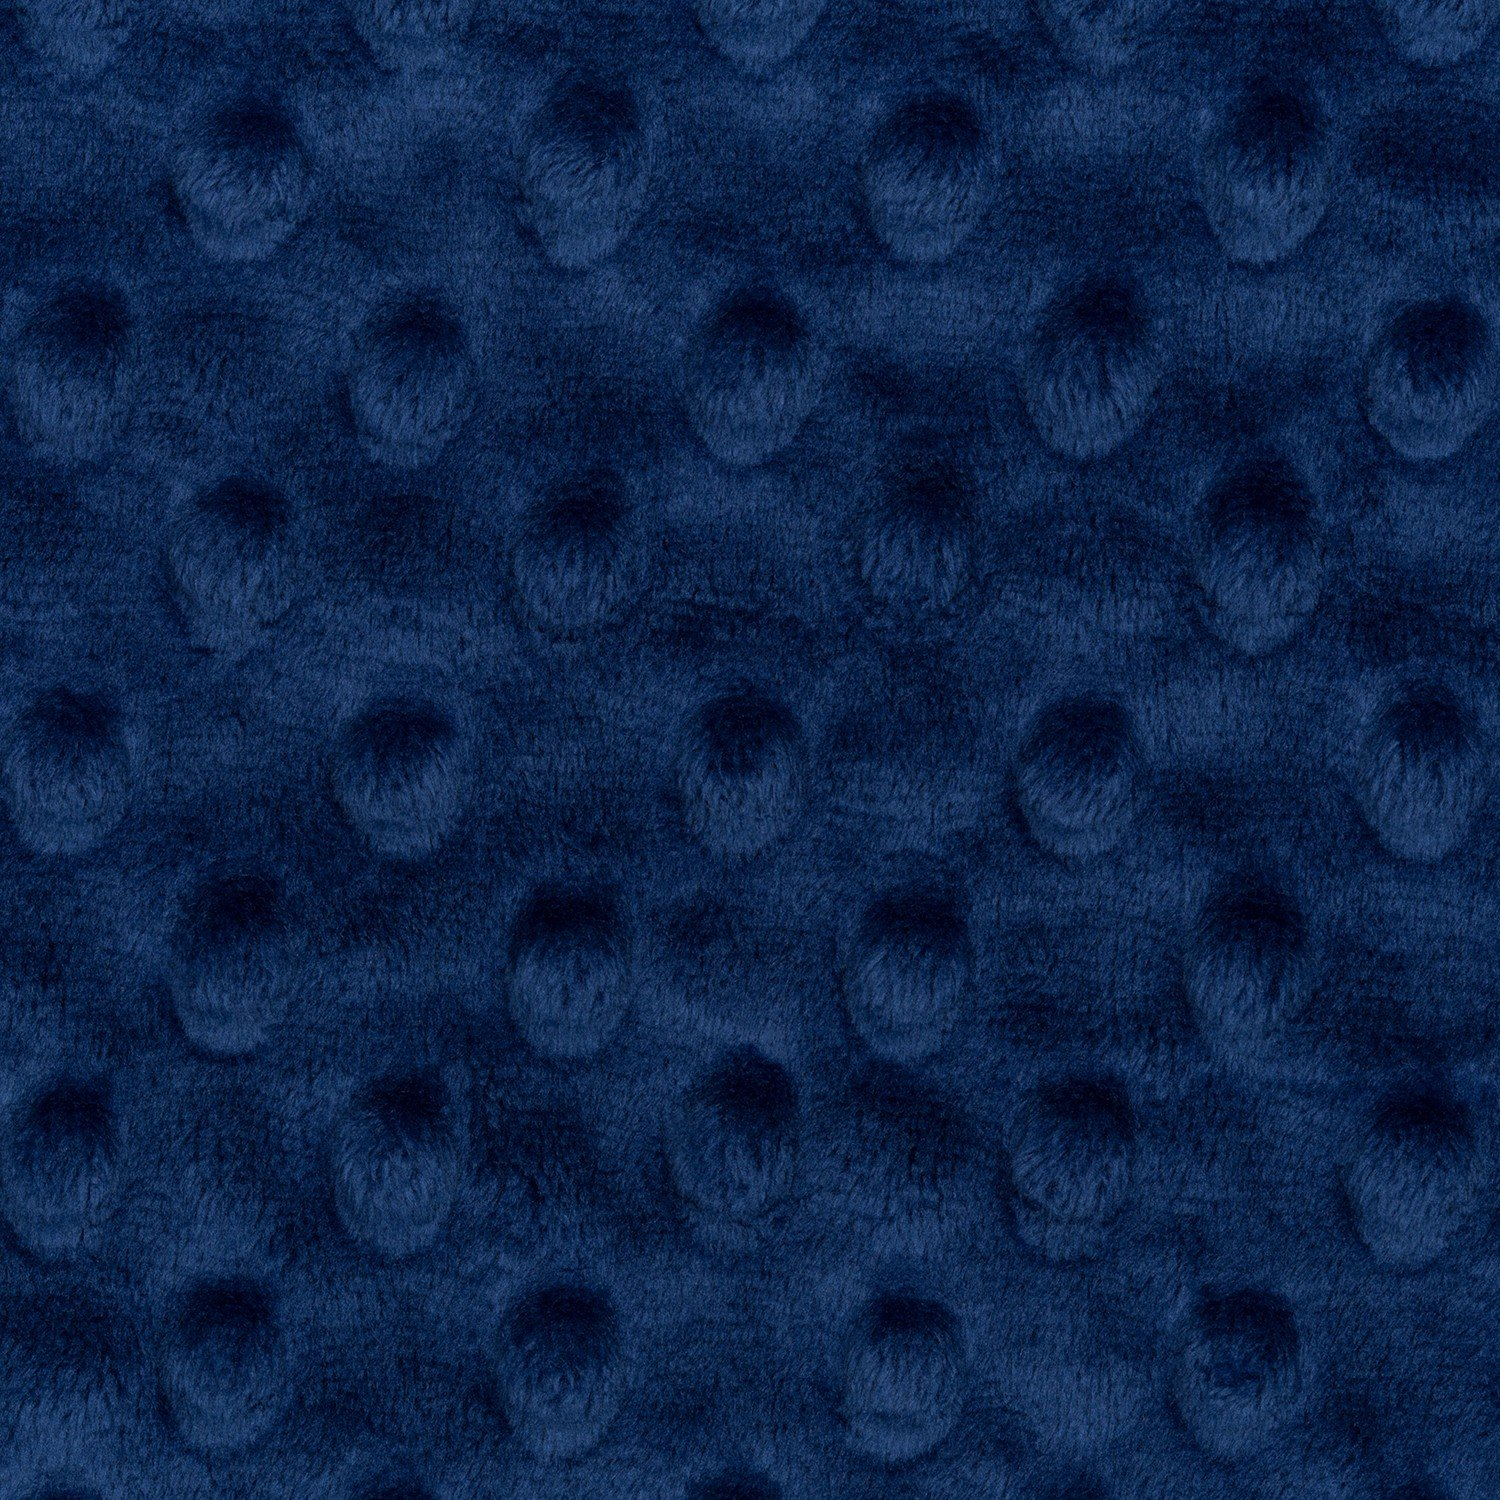 Shannon Cuddle Dimple Minky - Midnight Blue